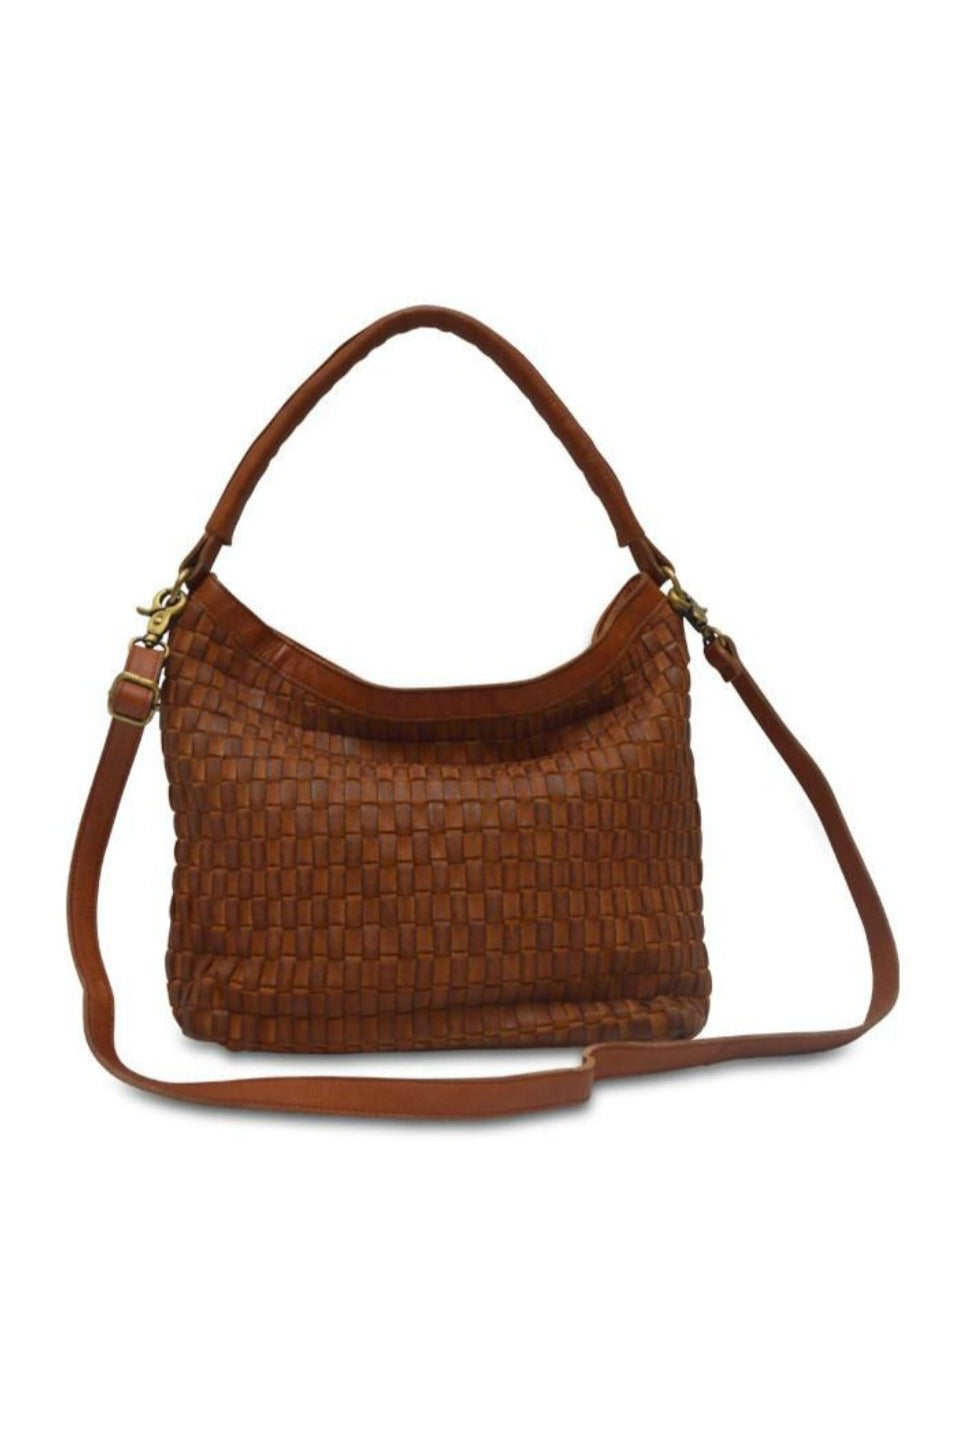 Anabaglish Skylar Woven Leather Bag in Cognac